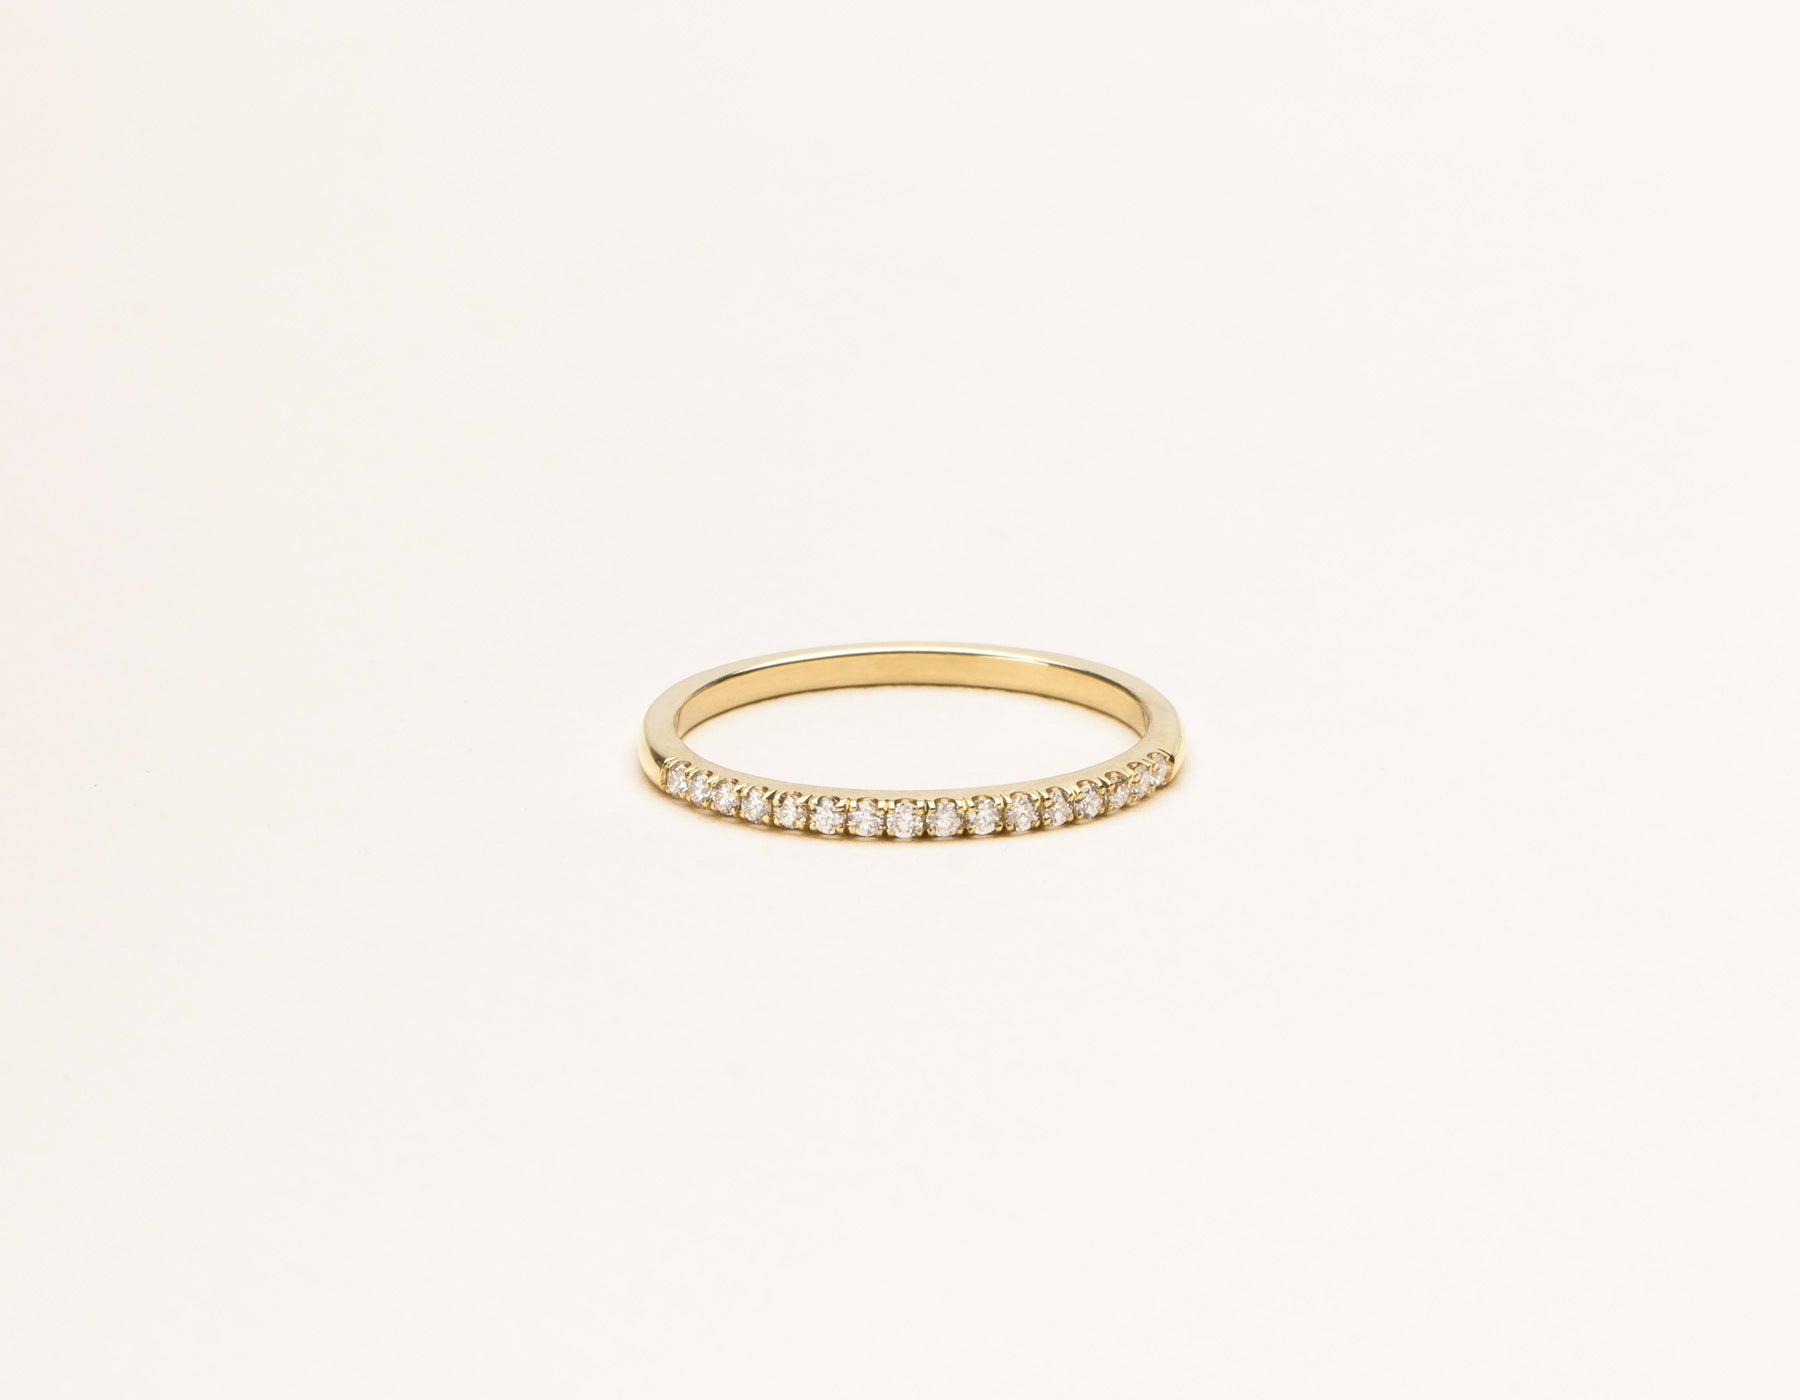 Modern elegant 14k solid gold Petite Diamond Pave Band Vrai and Oro minimalist jewelry, 14K Yellow Gold